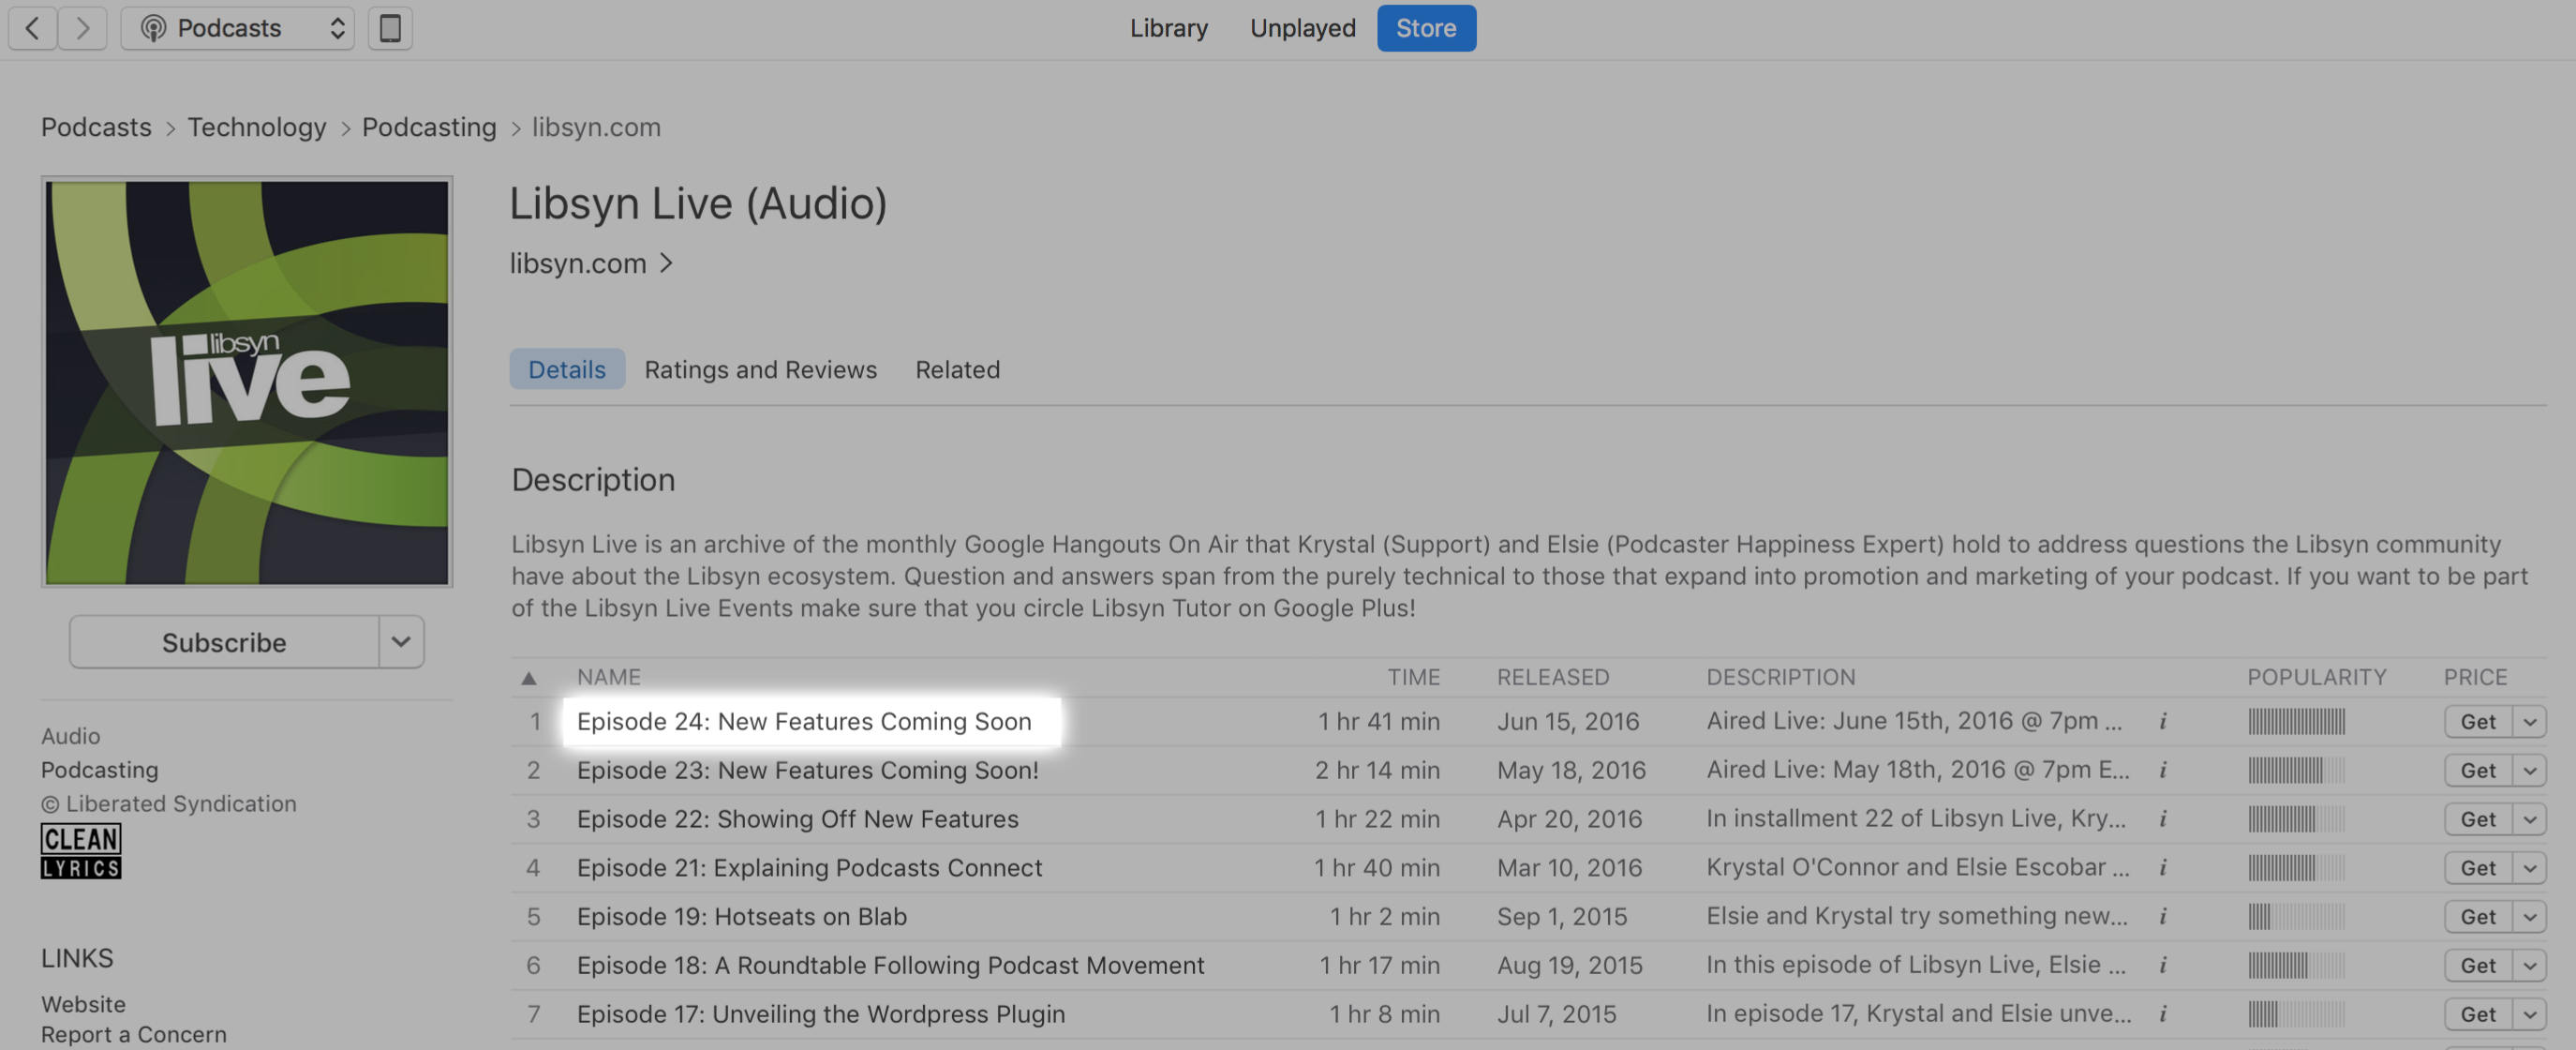 Episode Title in Apple Podcasts